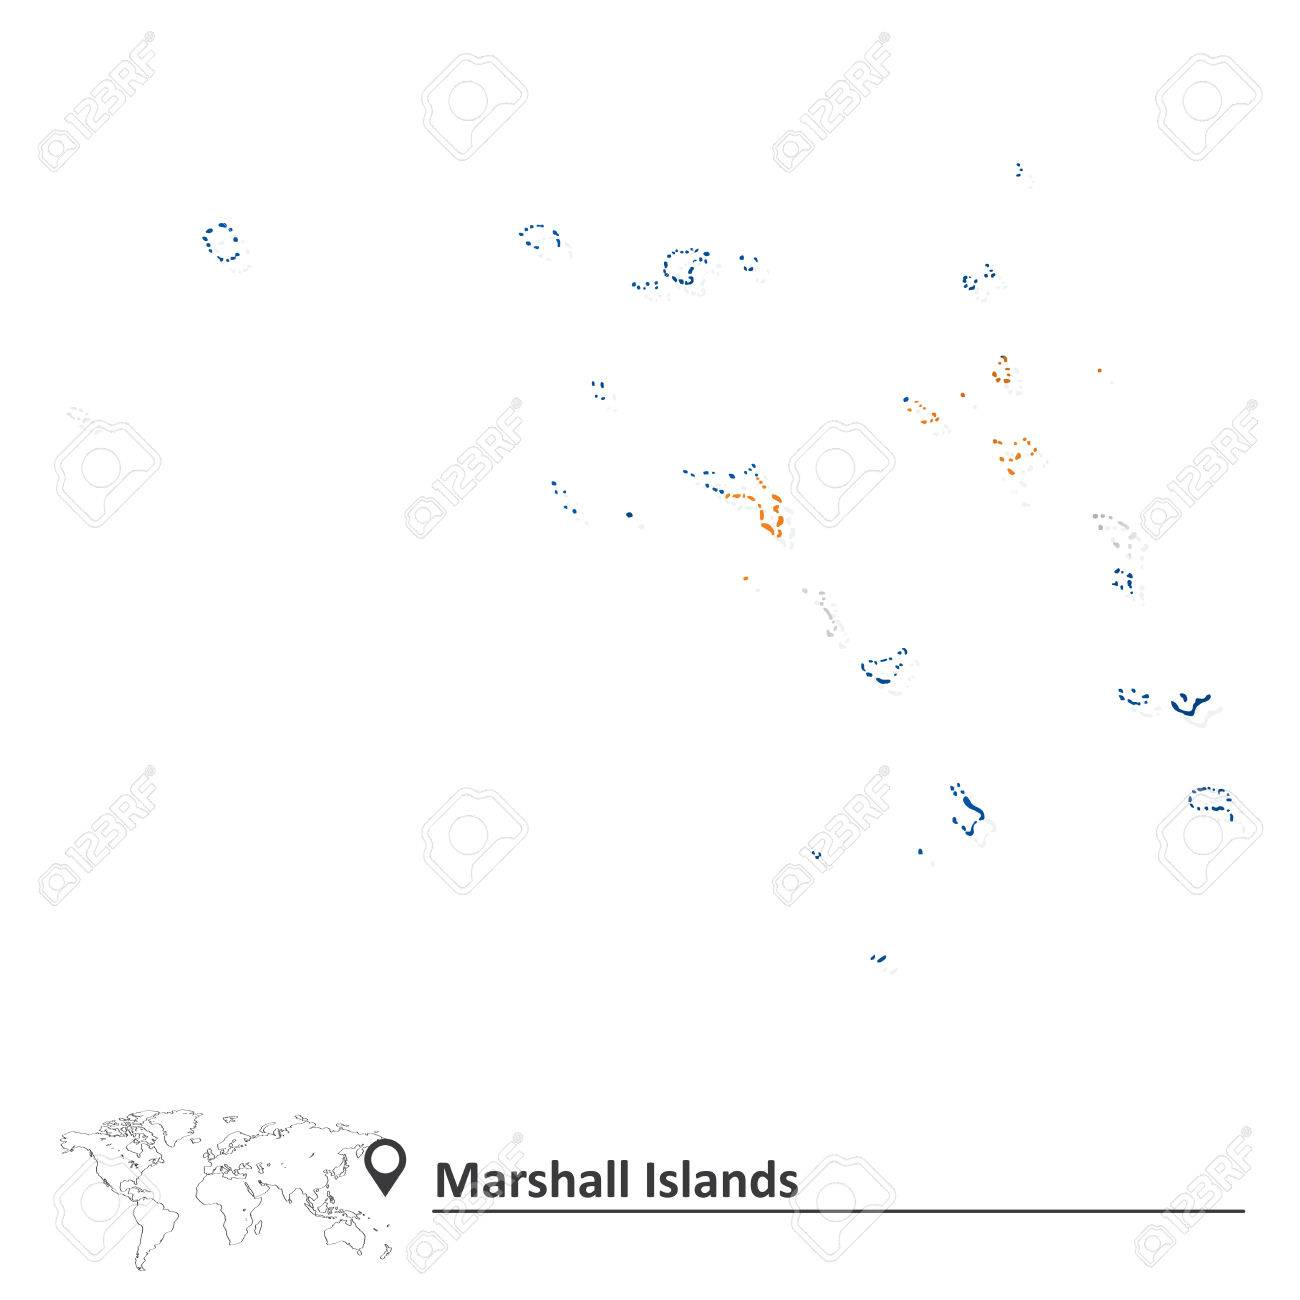 Map Of Marshall Islands With Flag Vector Illustration Royalty - Marshall islands map